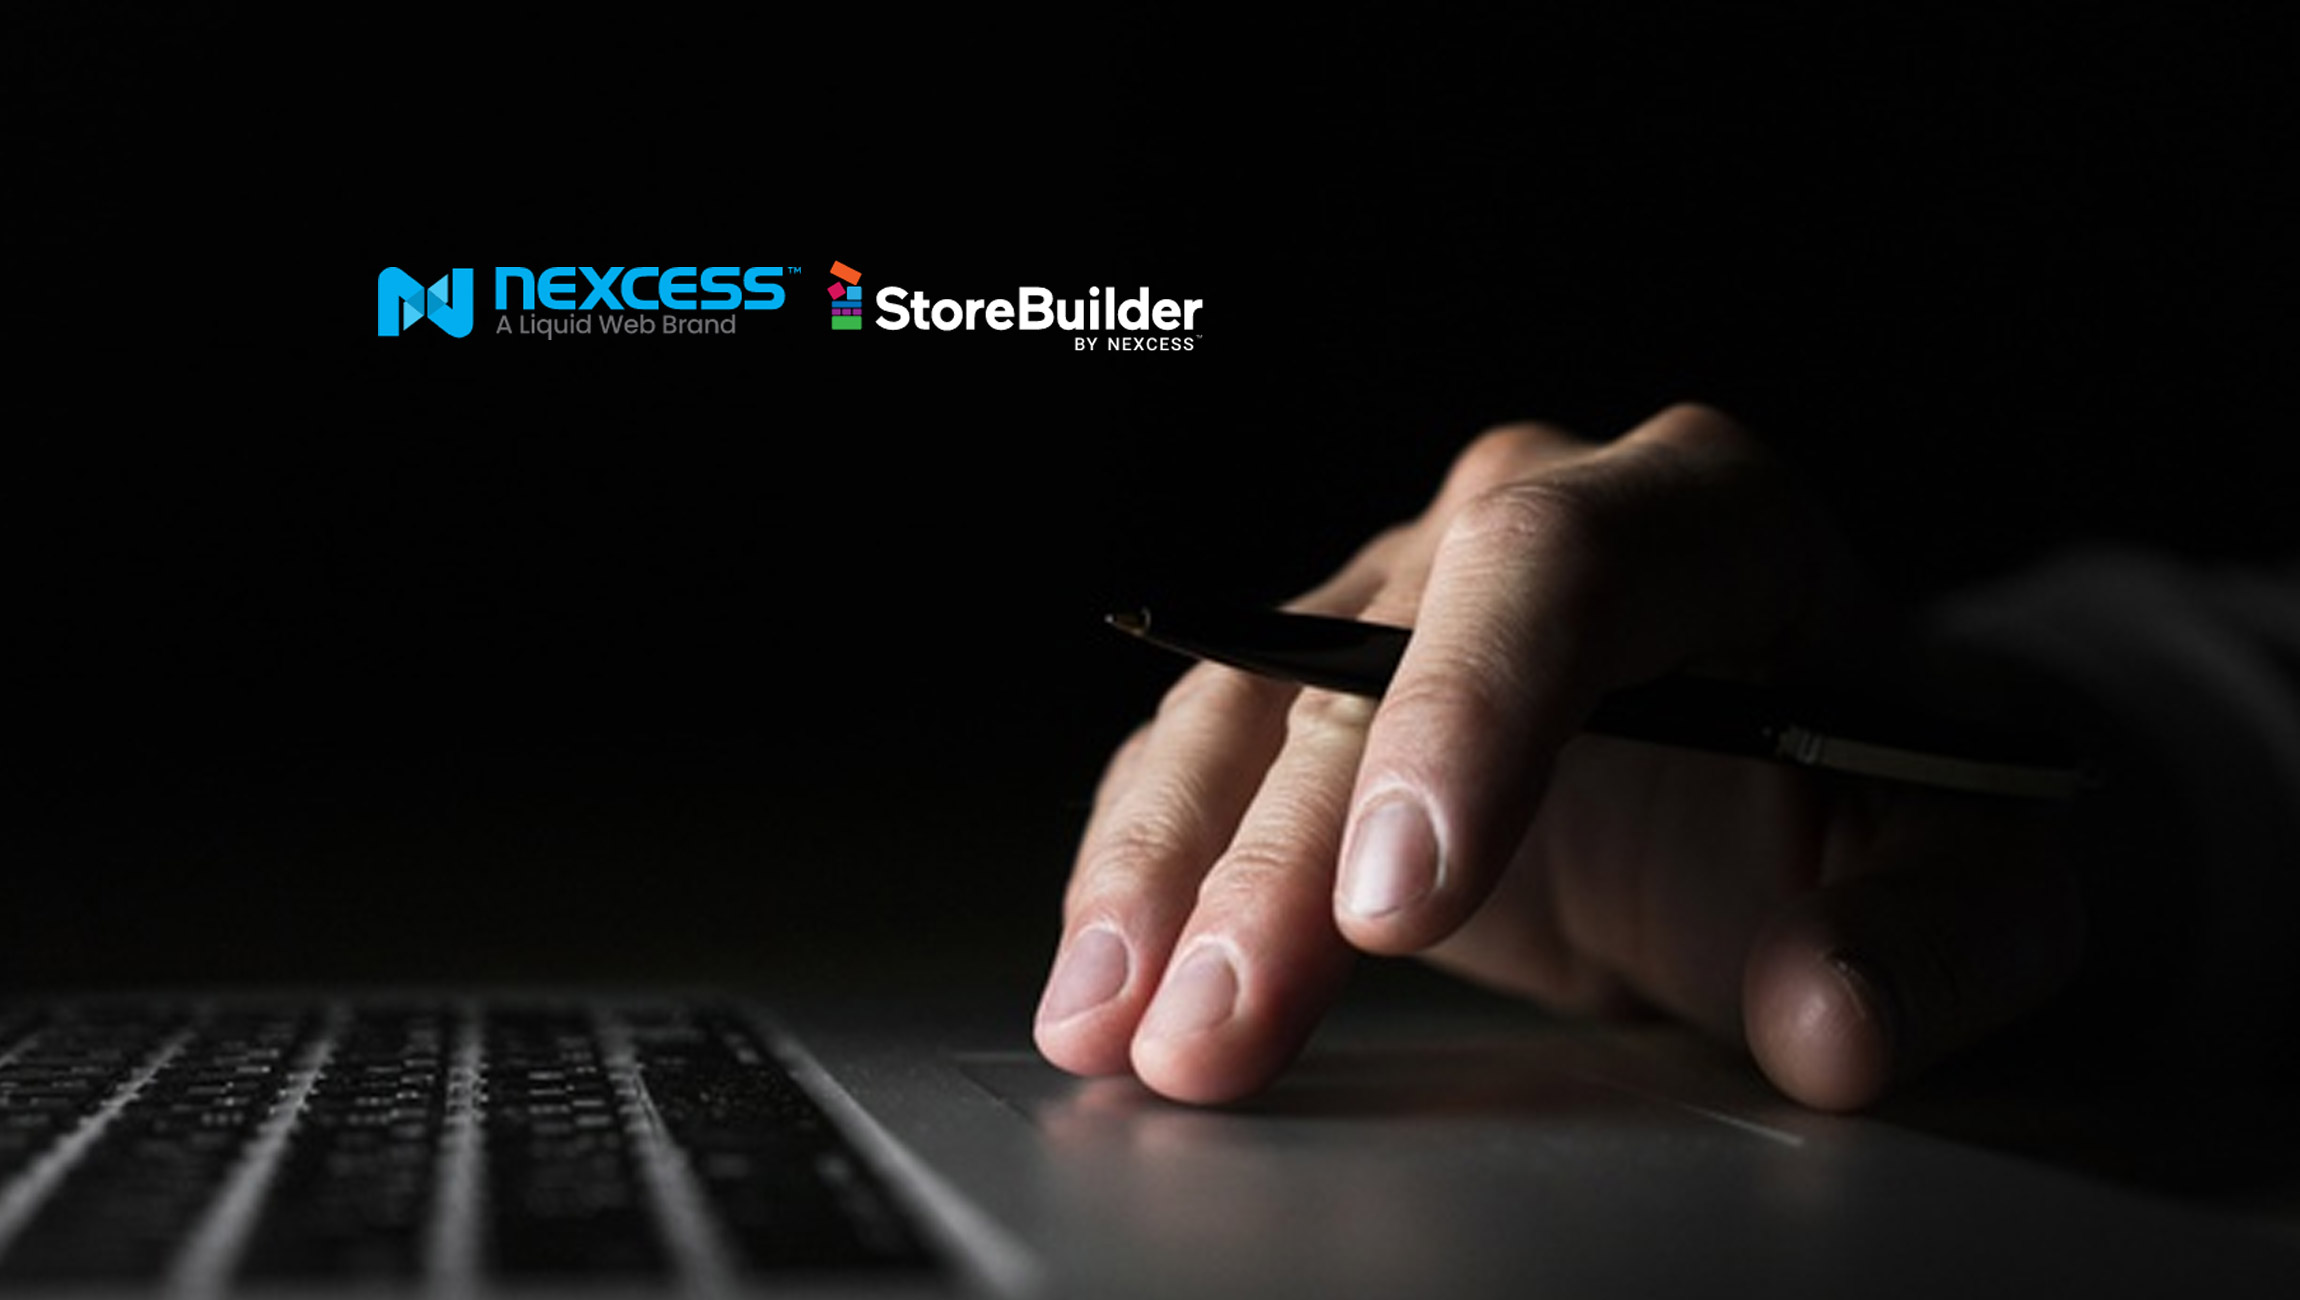 Nexcess Launches StoreBuilder For WooCommerce To Get Sellers Online Smarter And Faster